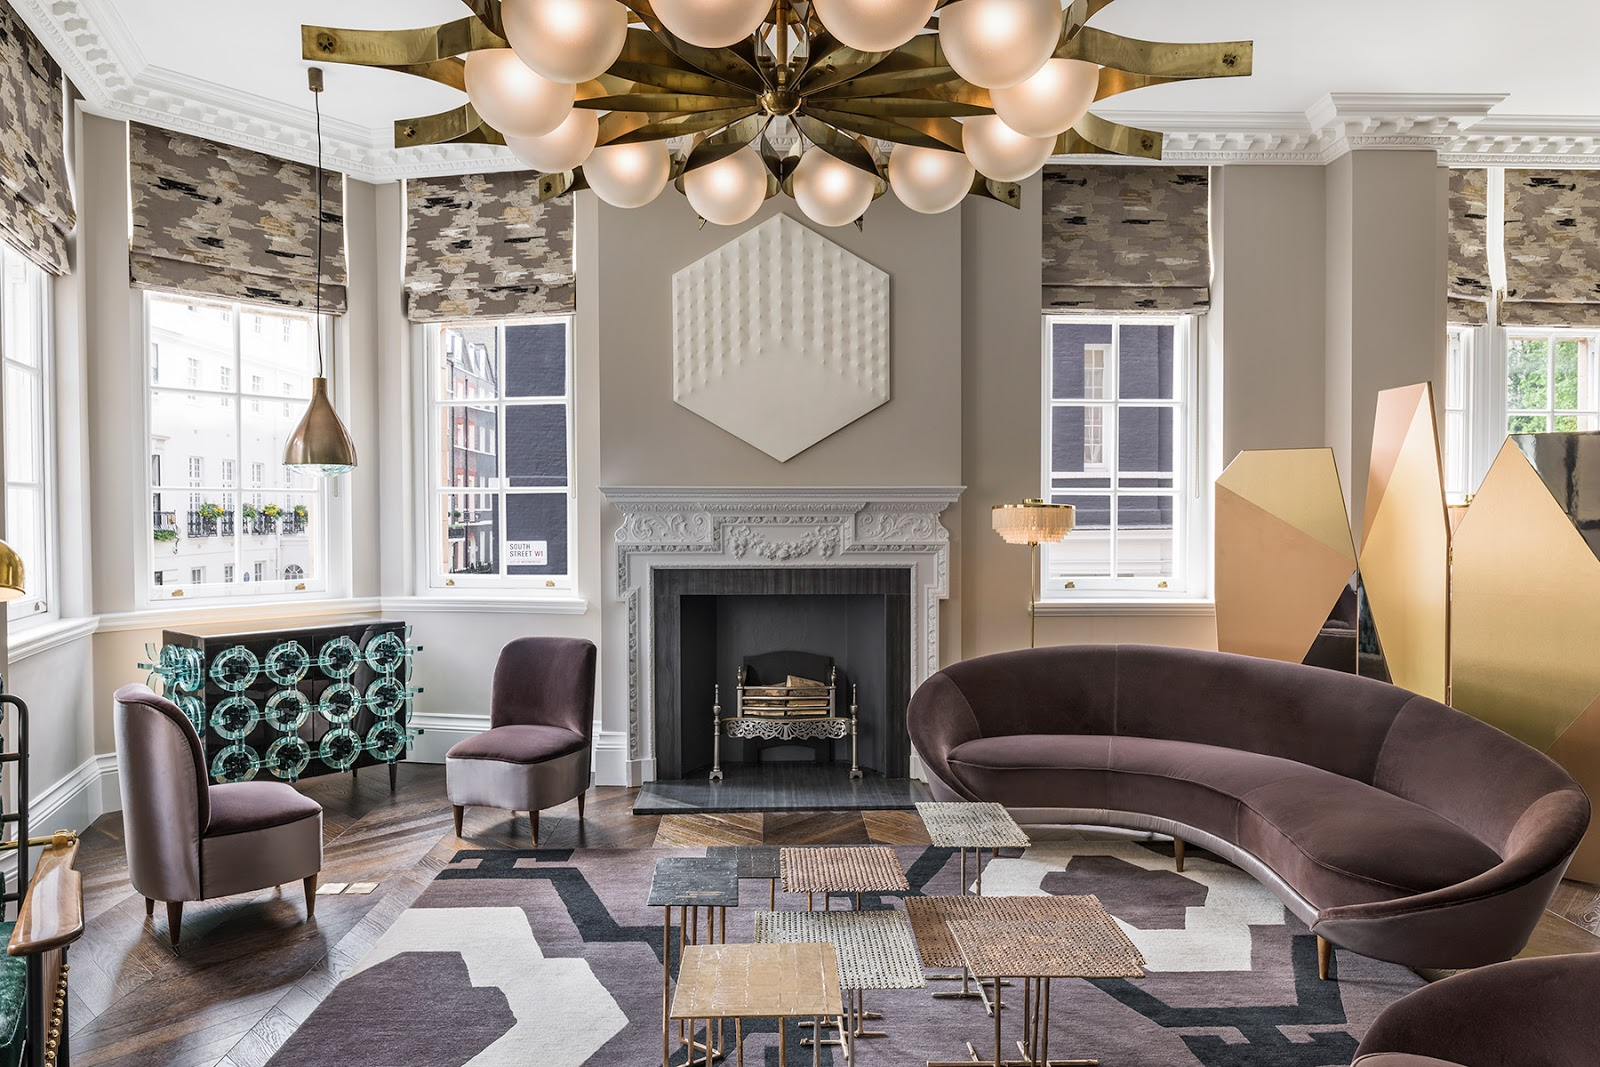 Luxurious eclectic London apartment with pattern geometric rugs, mid century modern furniture and art